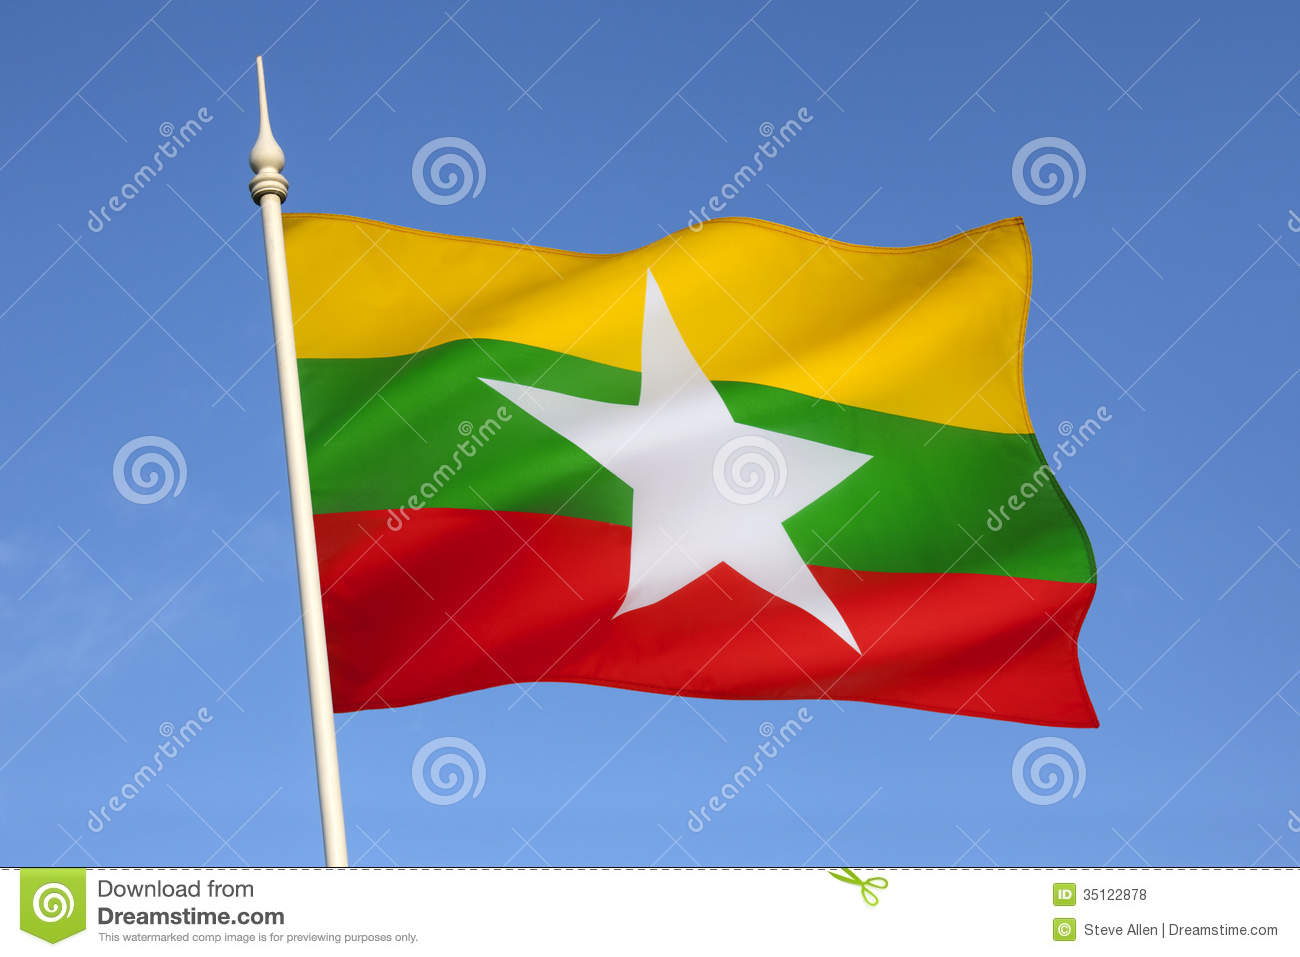 """the republic of the union of myanmar Phyu han and mu han north quincy high school march 24, 2014 the republic of the union of myanmar was formerly known as burma until 1989 when its military government changed its name to myanmar (east & southeast asia: burma"""", 2013."""